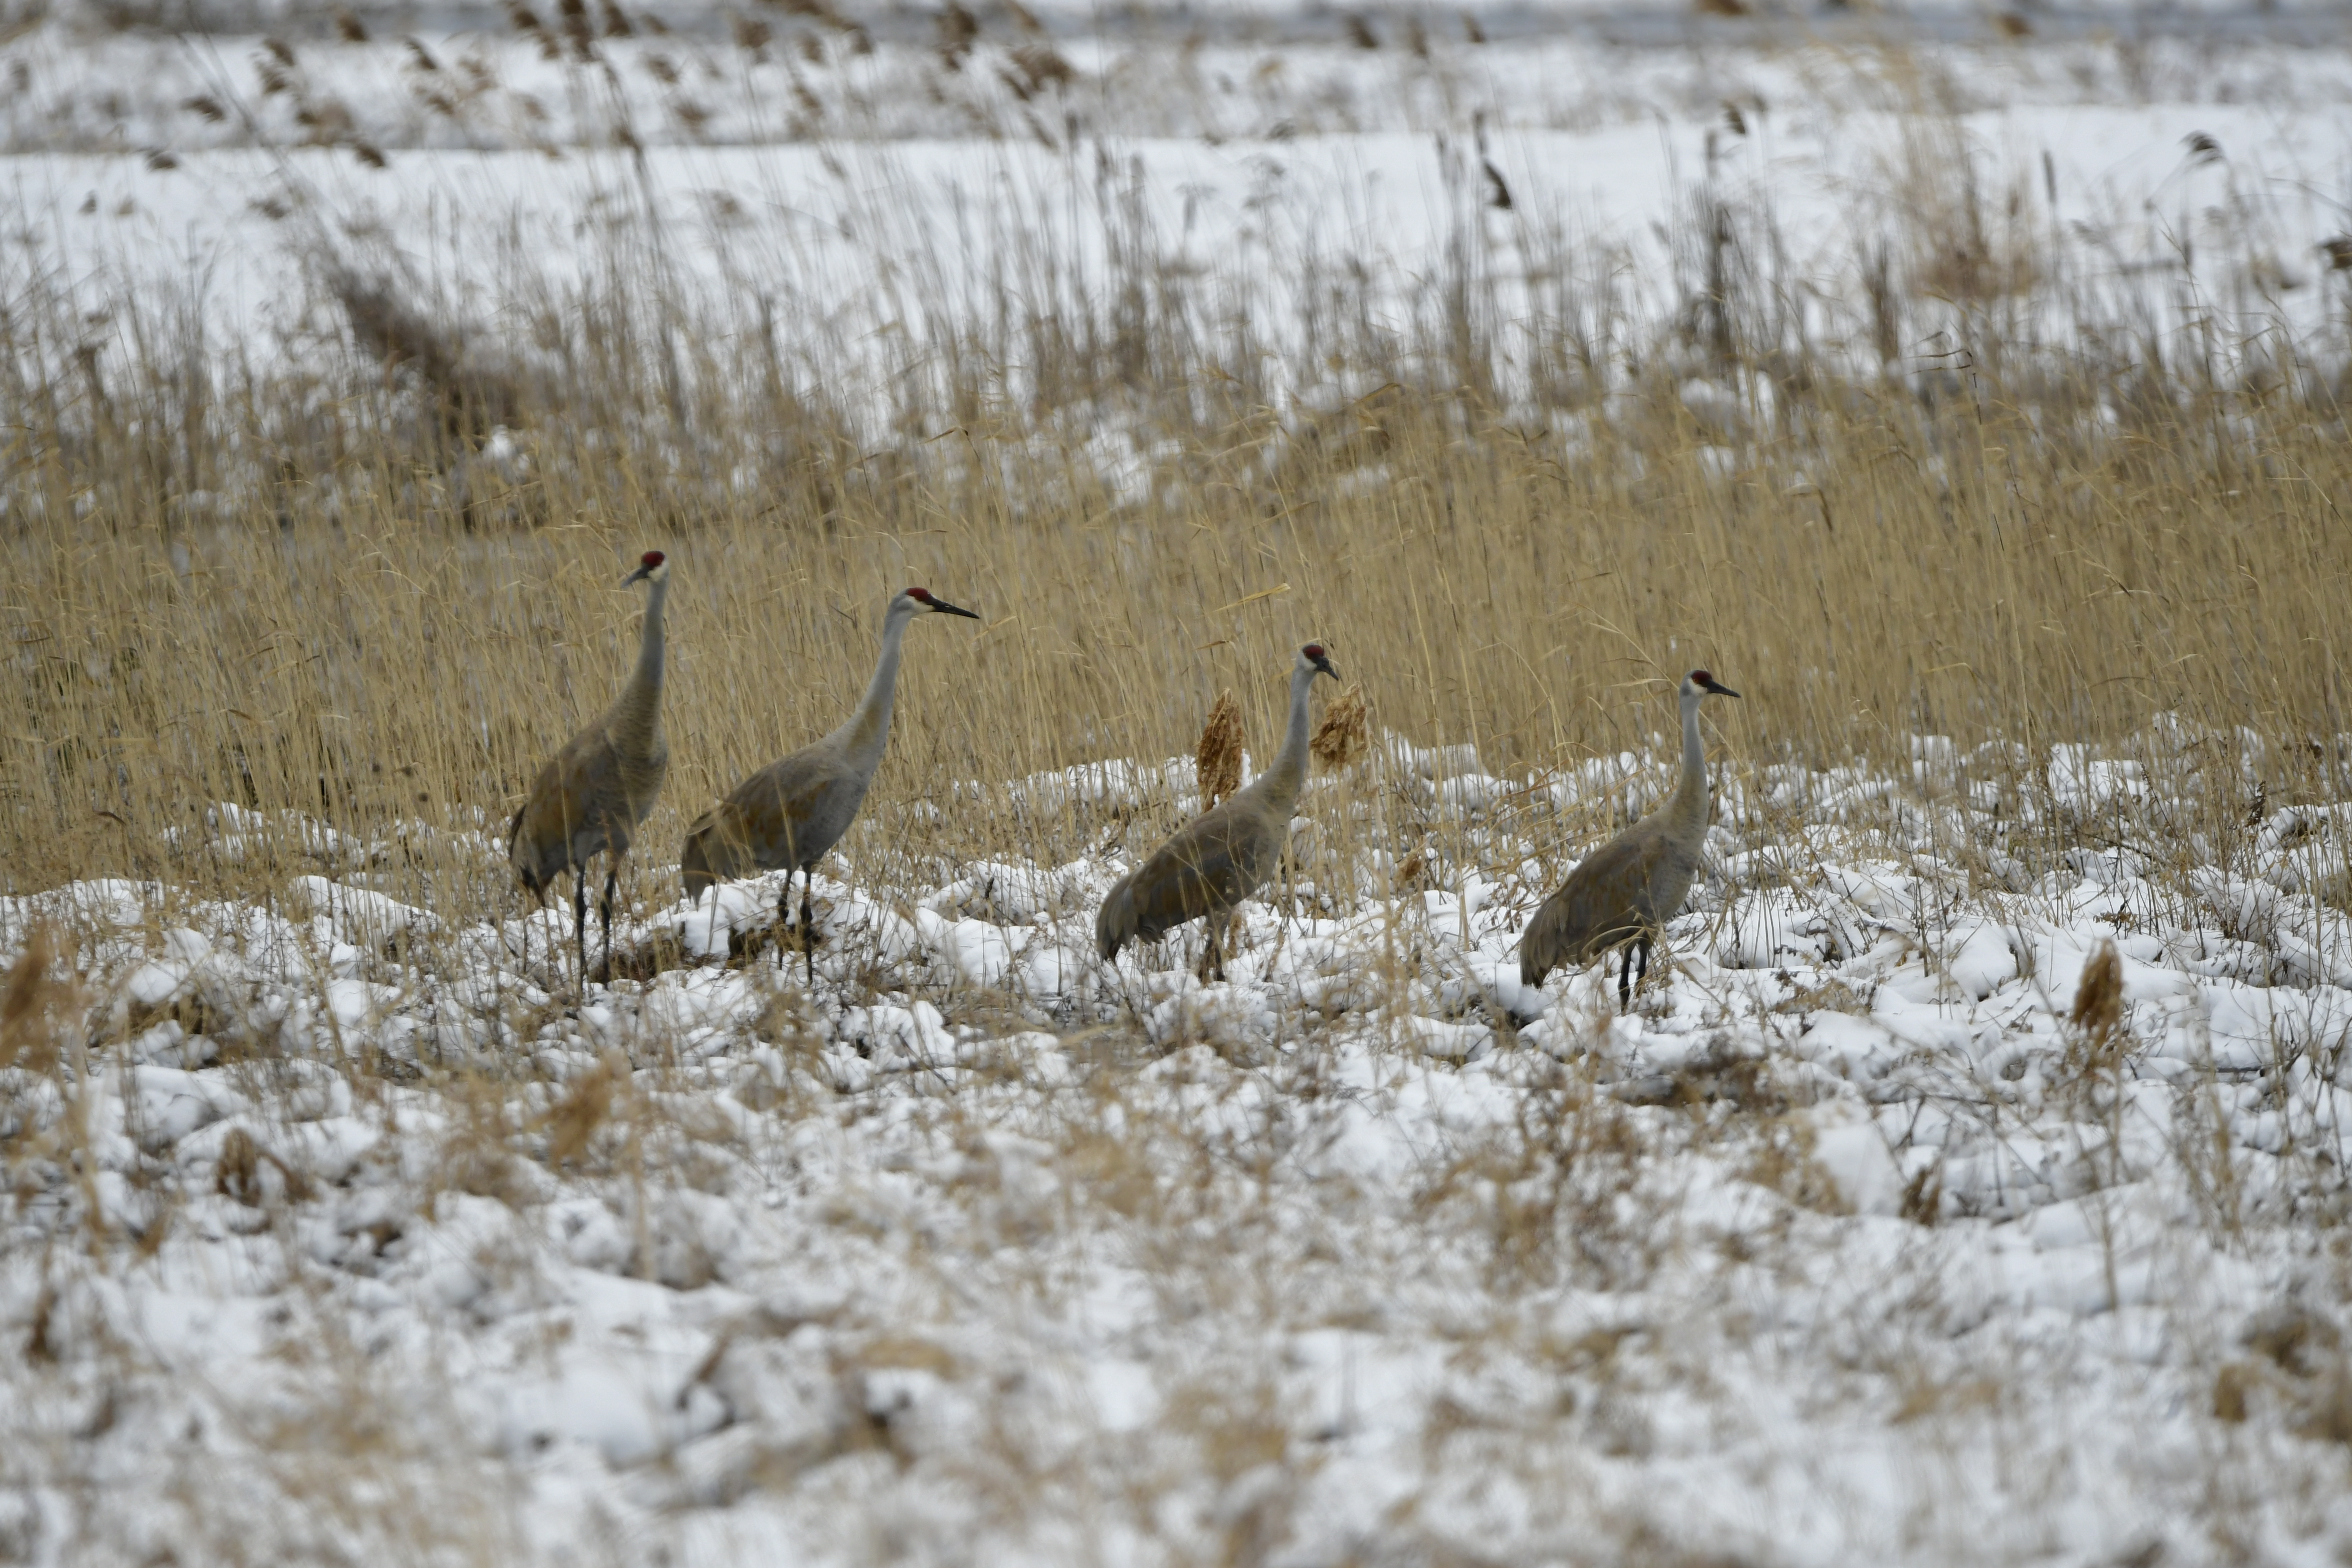 Sandhill cranes returning to the FLX (photo)